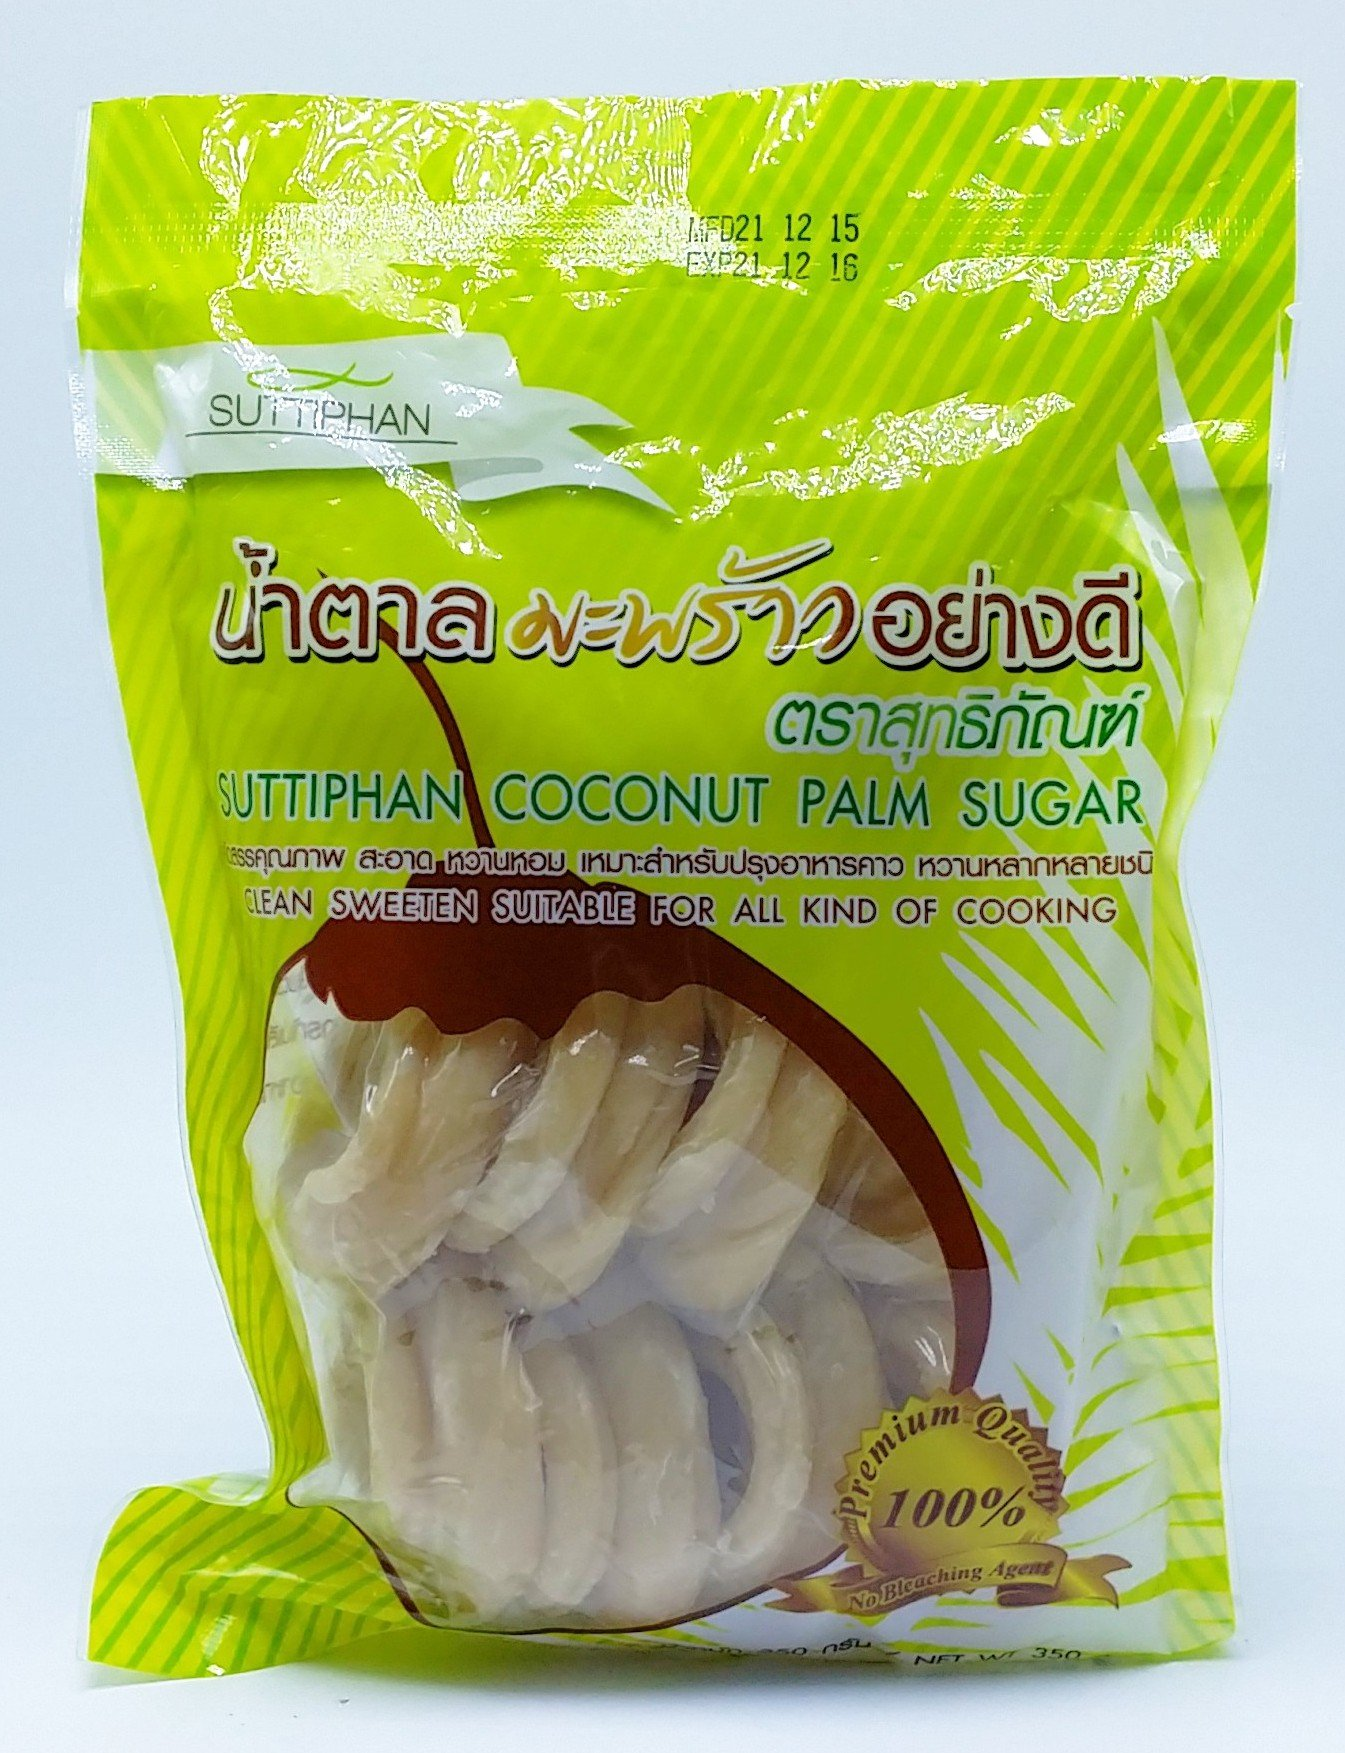 Organic Natural Coconut Palm Sugar Net Weight 350 G X 2 Packs by Suttiphan